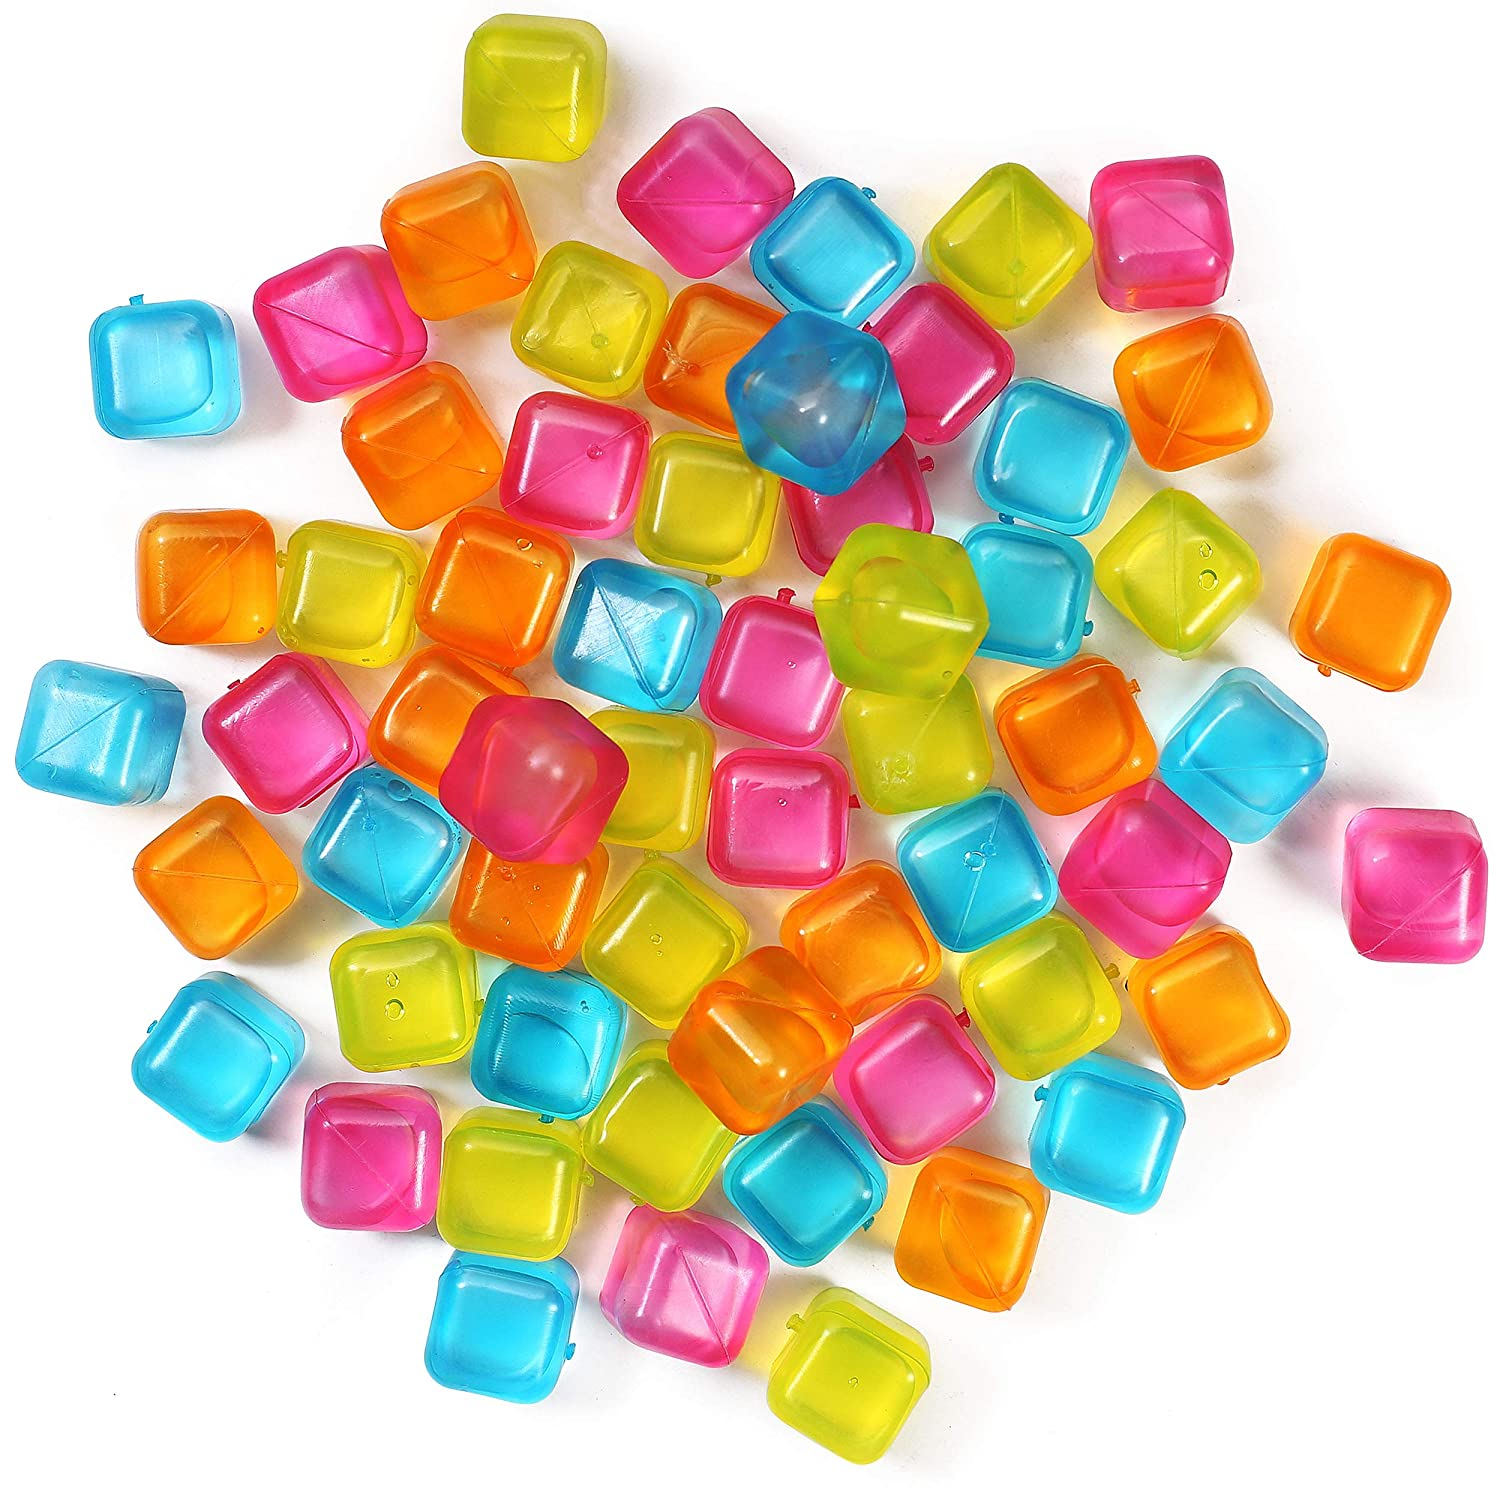 Reusable Ice Cubes Comes In Assorted Colors. Filled with Pure Water to keep your Drink Cold Longer Plastic Squares for Drinks like Whiskey Wine or Beer 60 Pack